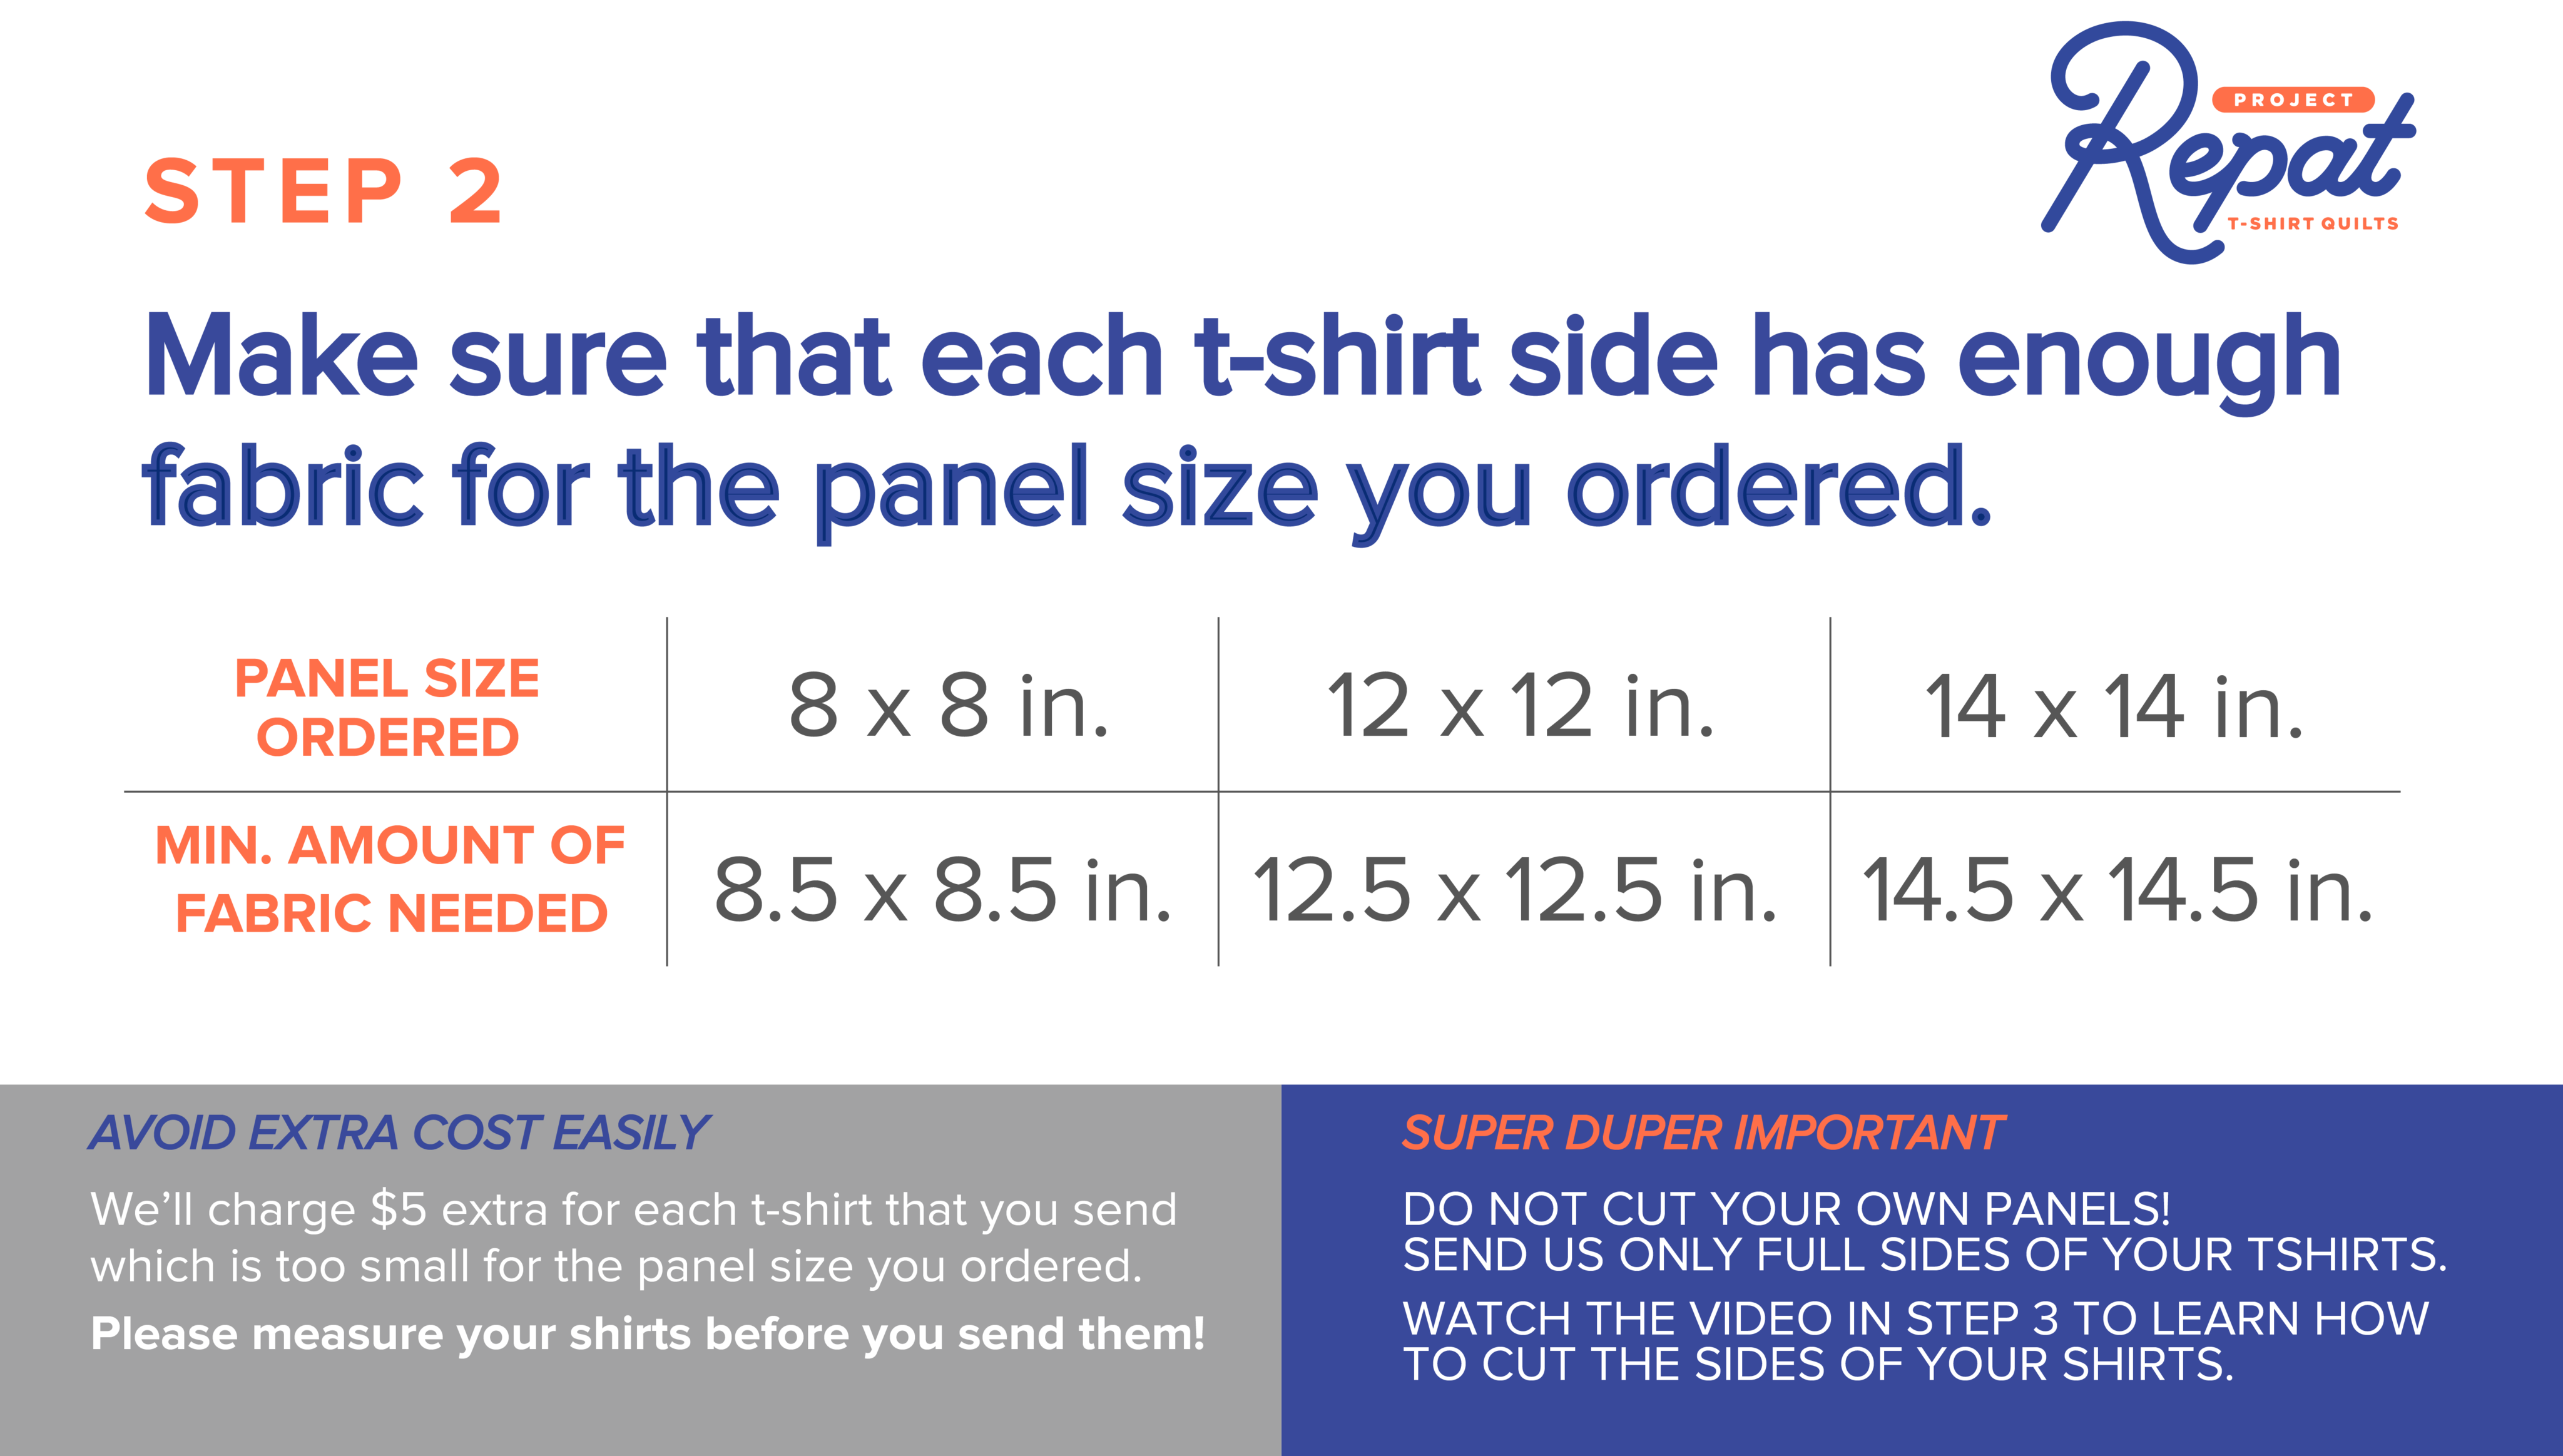 Instructions for sending your shirts to Project Repat